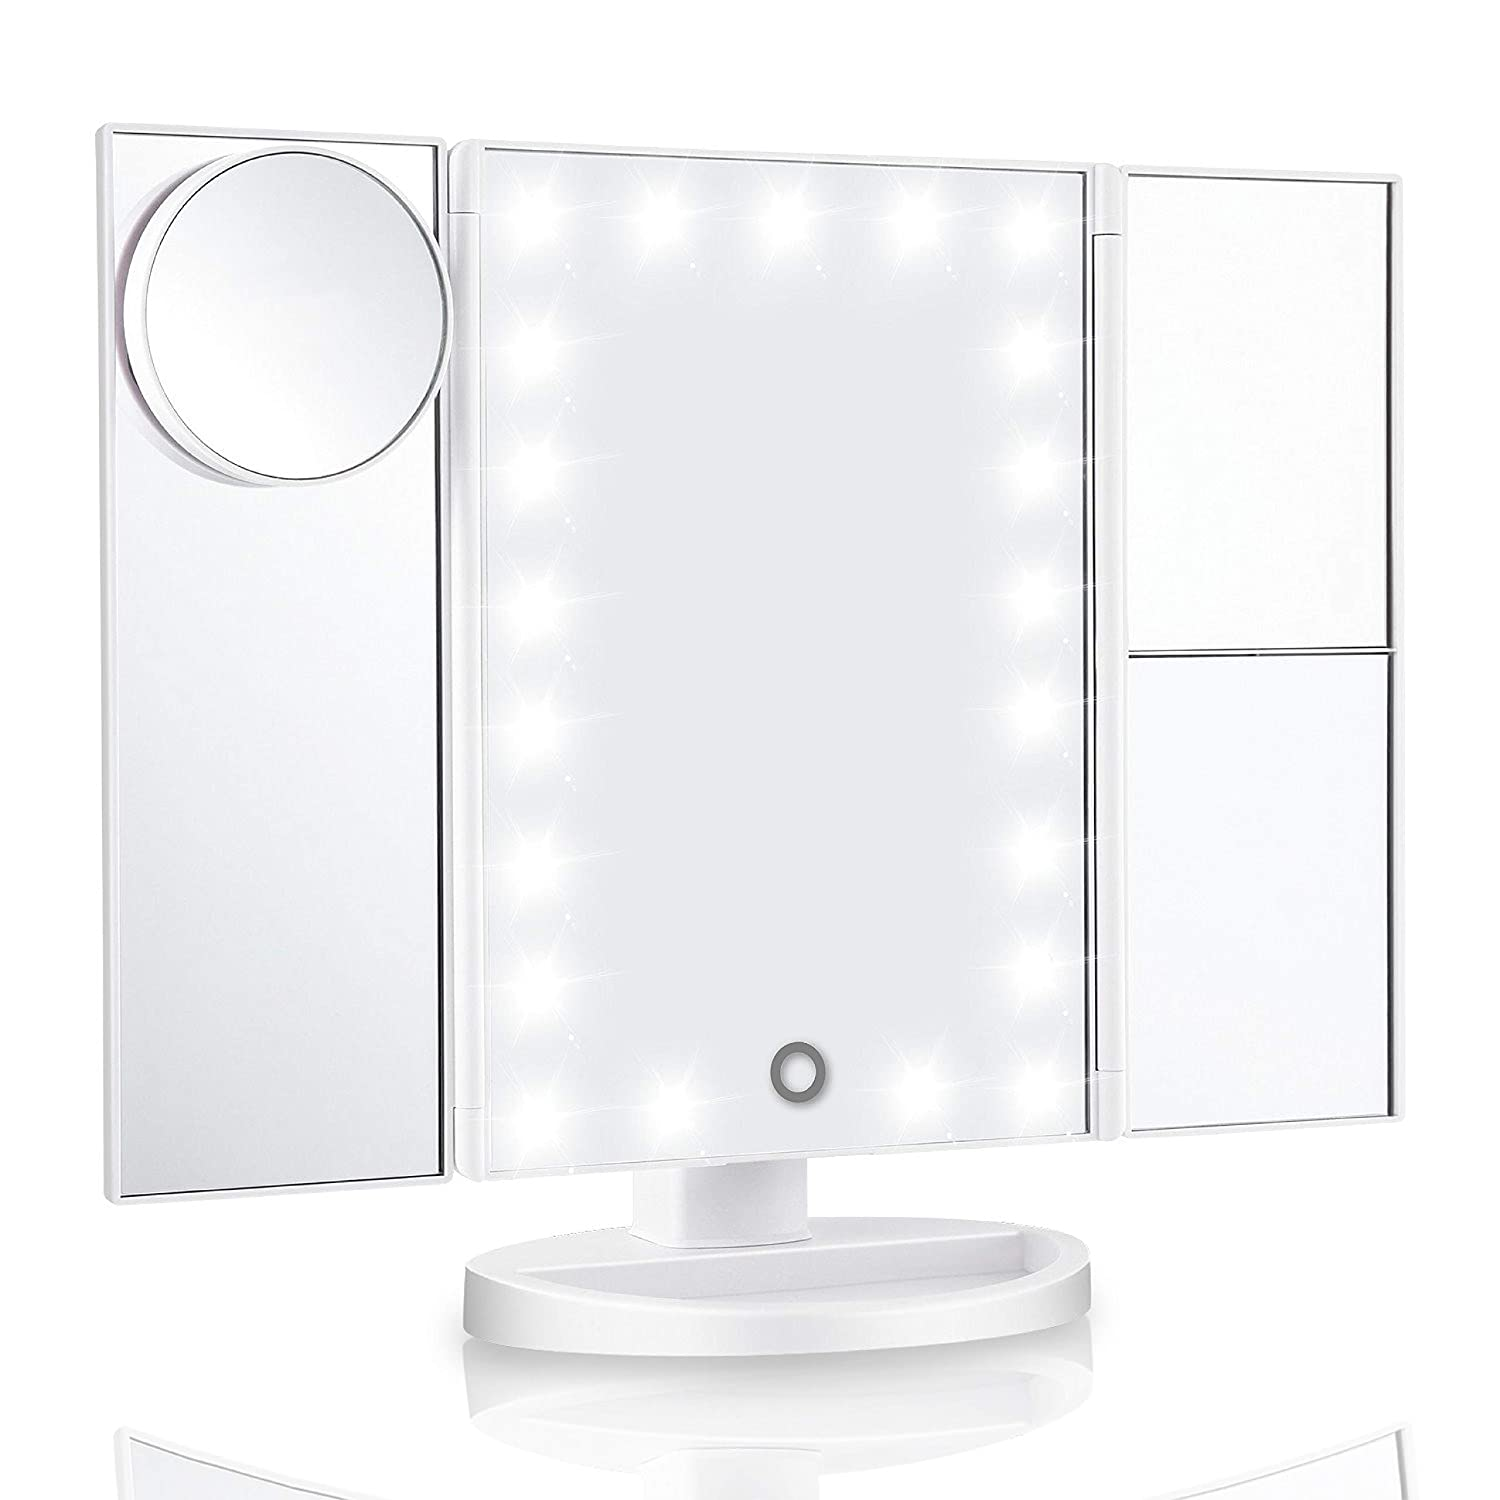 """Vanity Mirror With Lights & Latest 21 Led Lighted Makeup Mirror - New 11x7.1x1"""" Trifold 2X/3X Magnifying Mirror With Improved Touch Screen Dimming Technology For Your Perfect Makeup Session"""